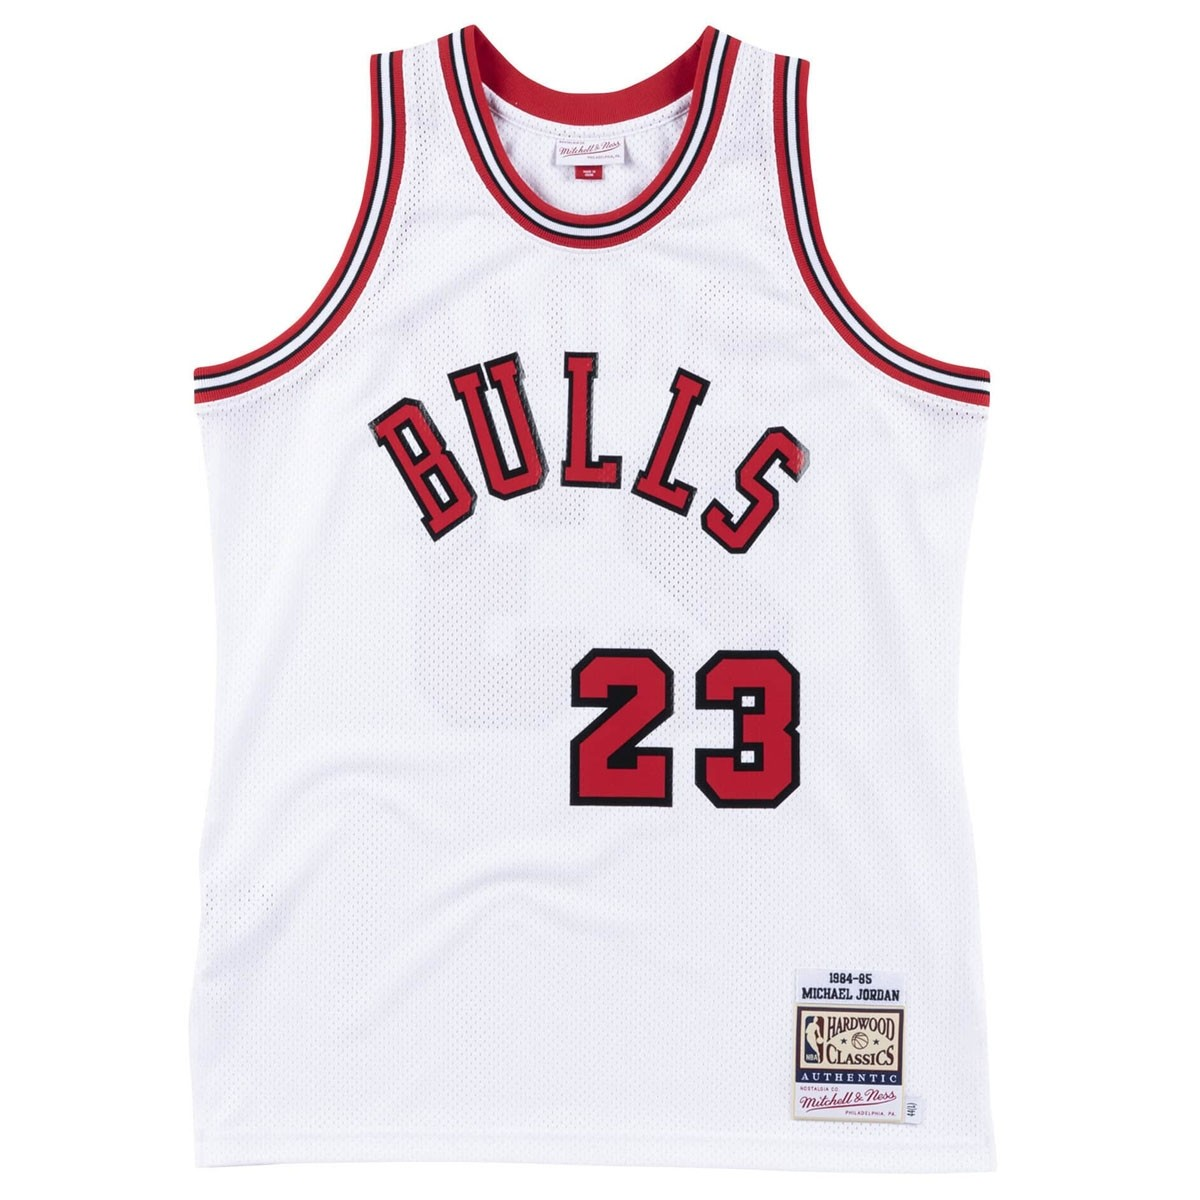 Mitchell & Ness Jordan Authentic Jersey '84-85 Rookie Home'